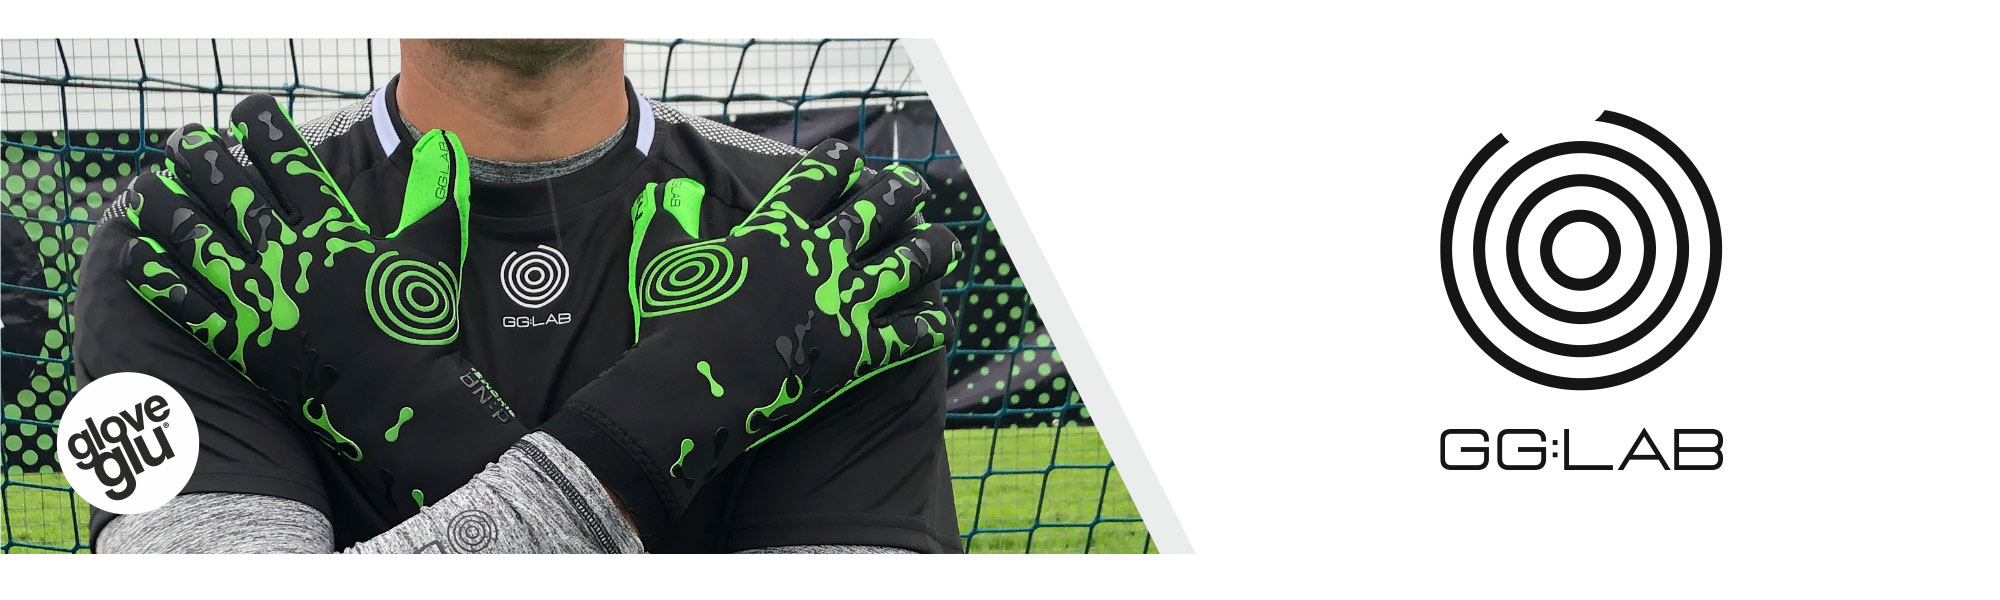 GG:LAB Junior Kids Goalkeeper Gloves Glove Glu